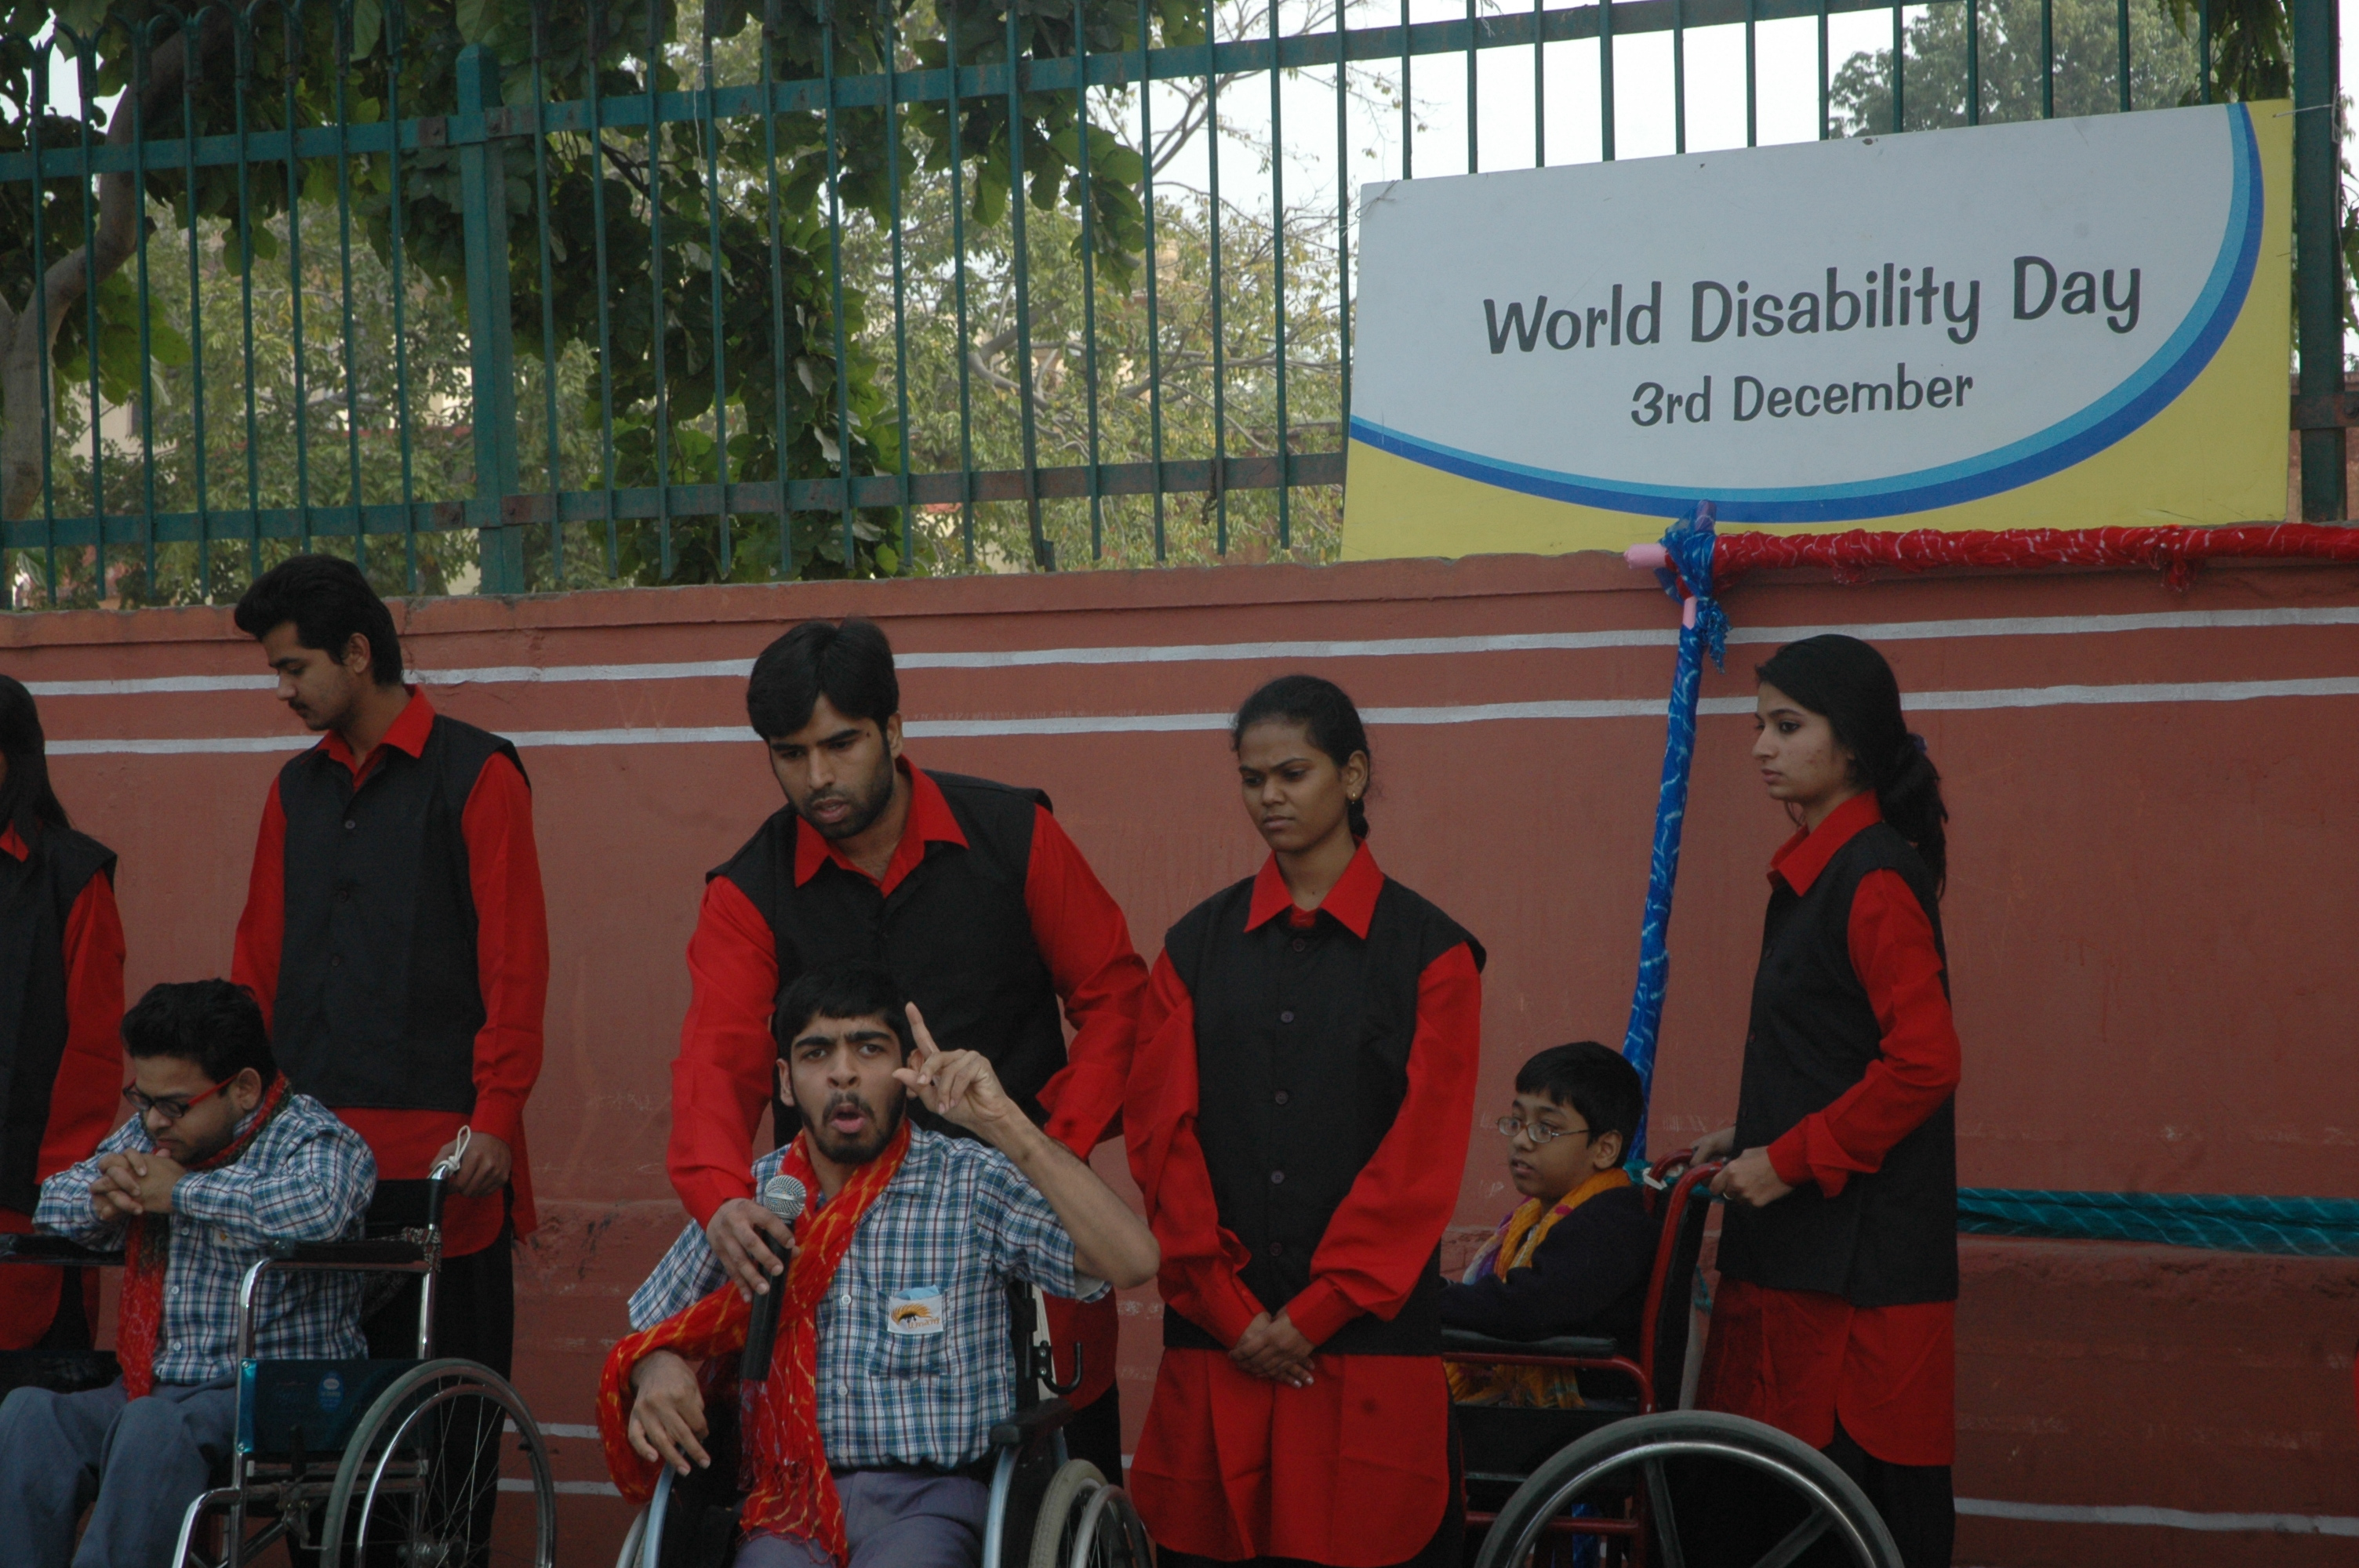 This is how Jaipur marks World Disability Day